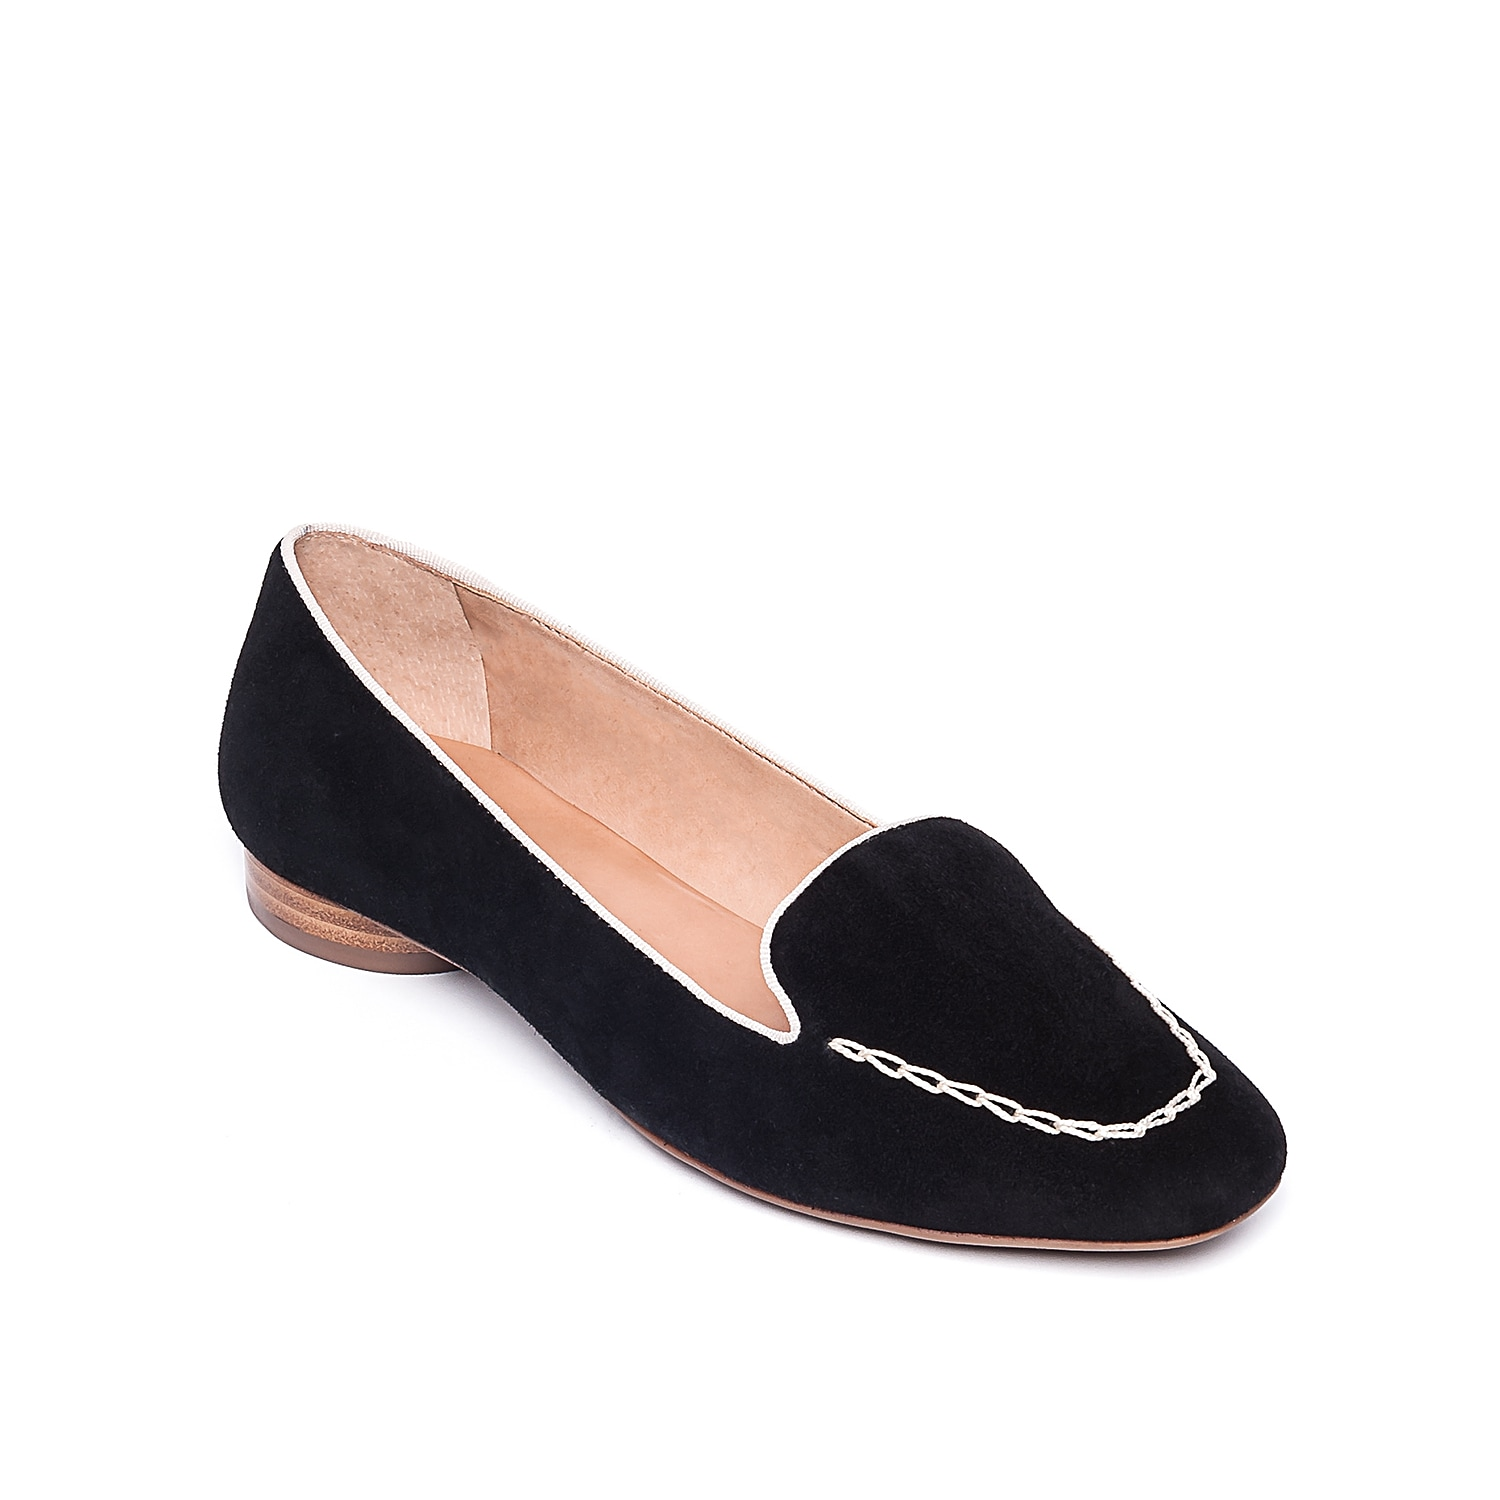 Give your ensemble trendsetting style with the Edyth loafer from Bernardo. This smoking slipper features a square toe and cylindrical heel that will make heads turn!